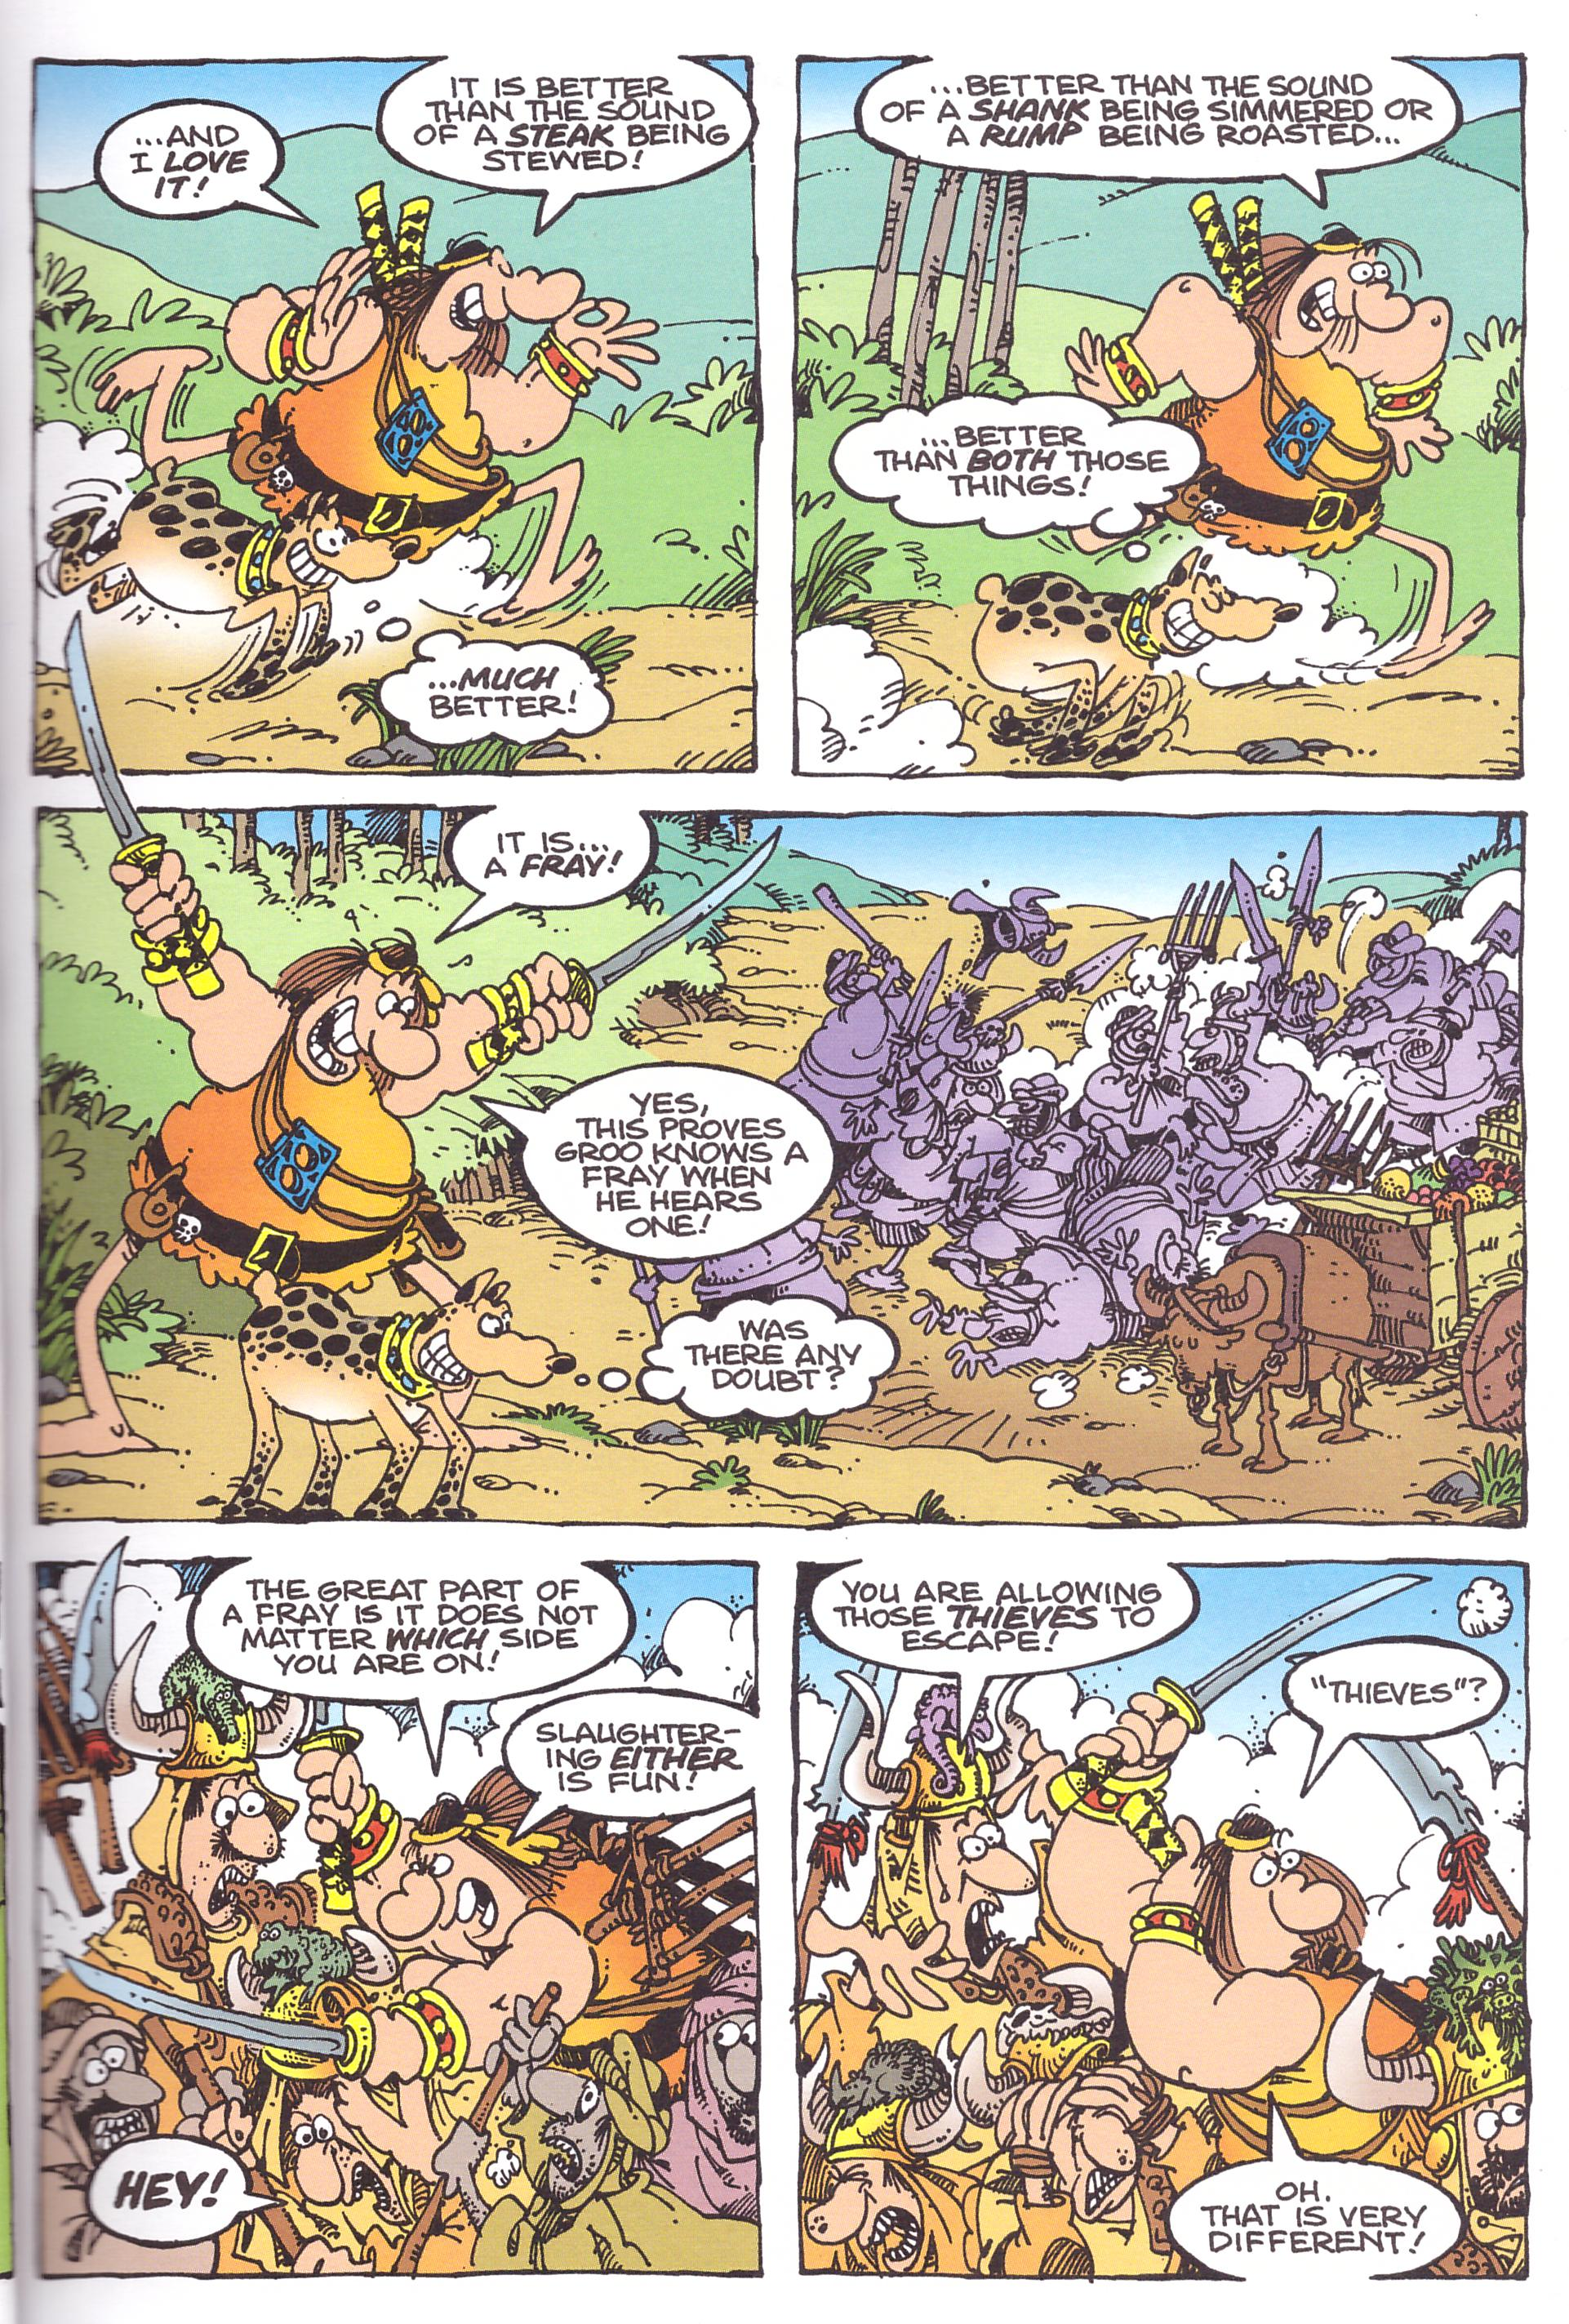 Groo & Rufferto review